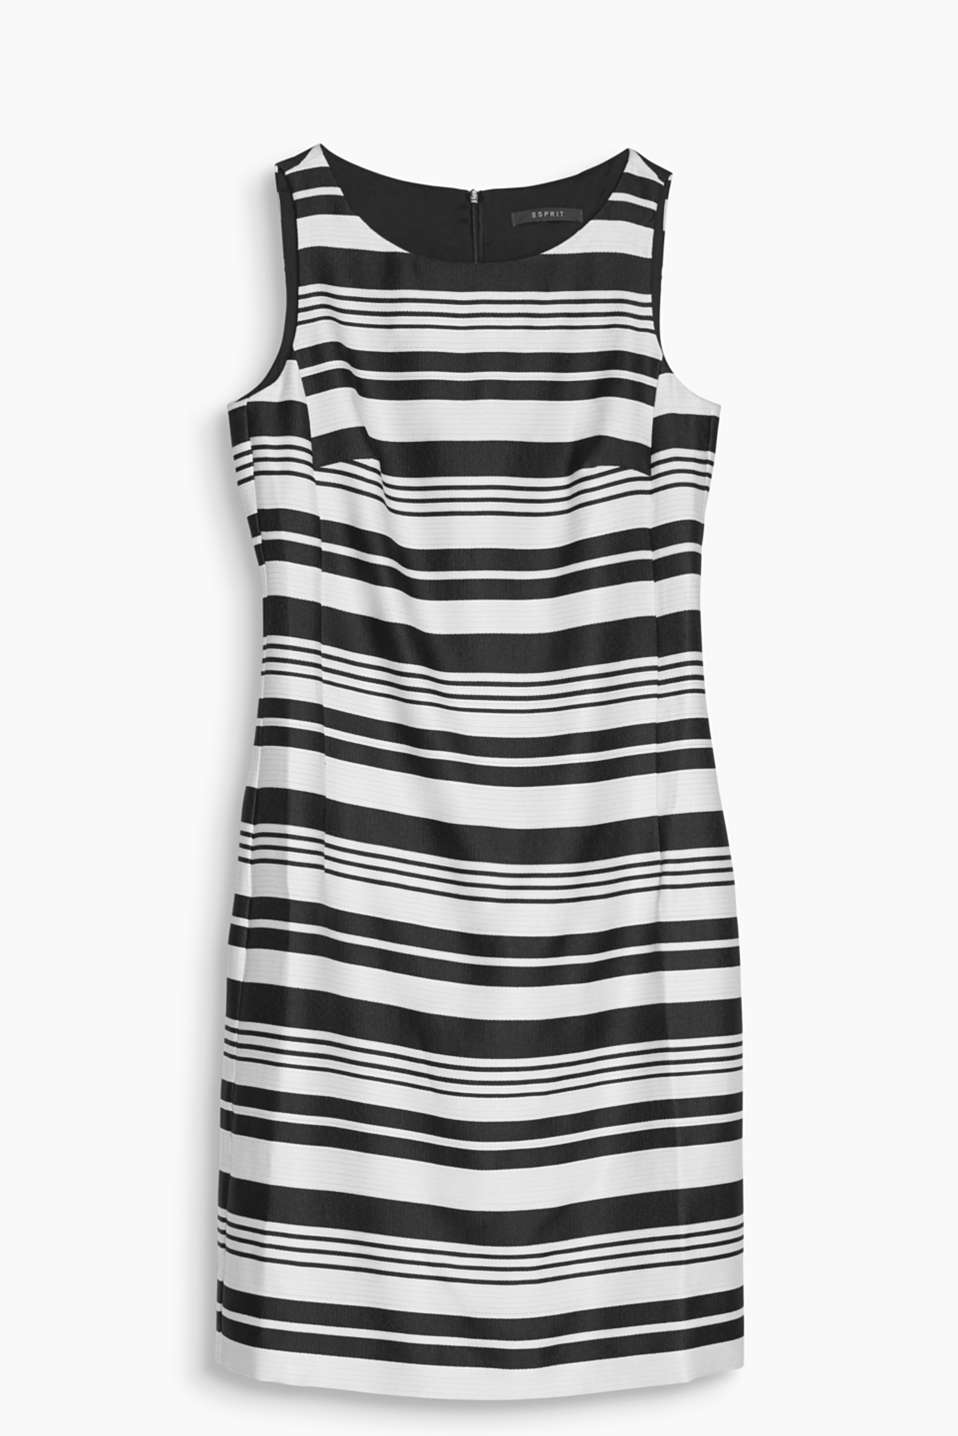 A timeless treasure with retro charm! Its cool striped pattern makes this fitted shift dress something special.